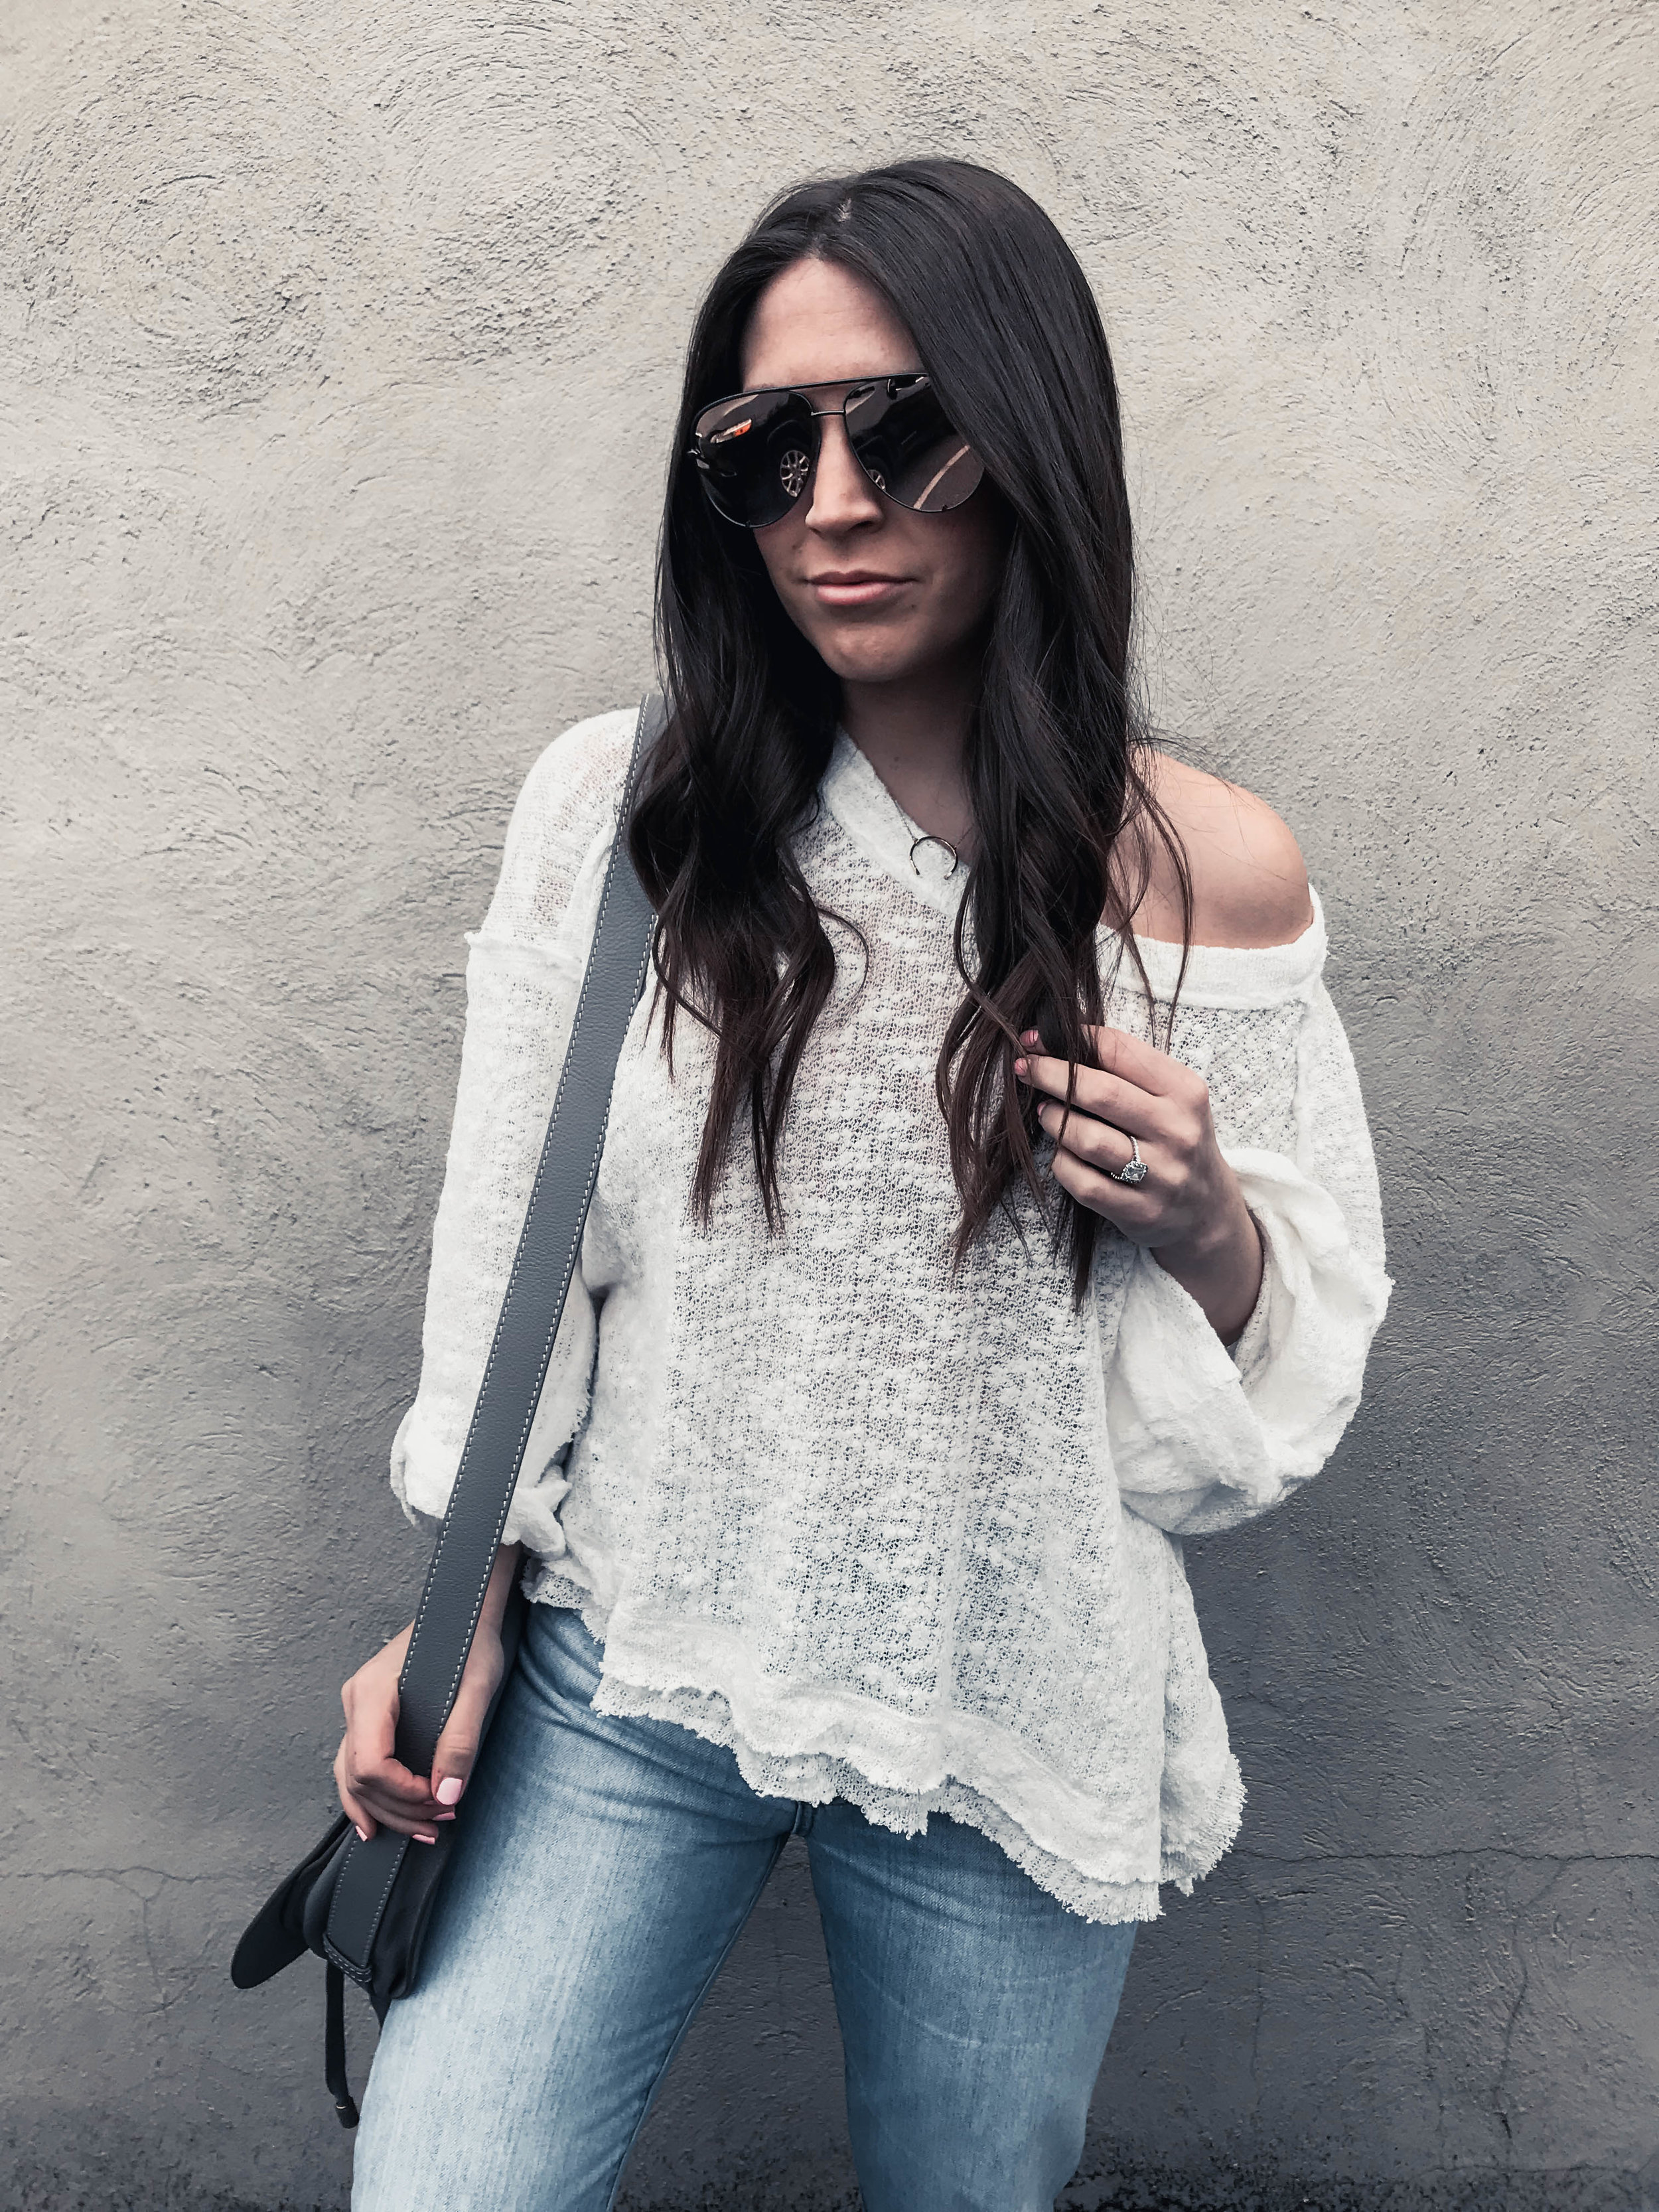 Must Have White Top for Spring | Pine Barren Beauty | spring outfit idea, spring transition outfit idea, white flowy top, distressed denim, Chloe bag